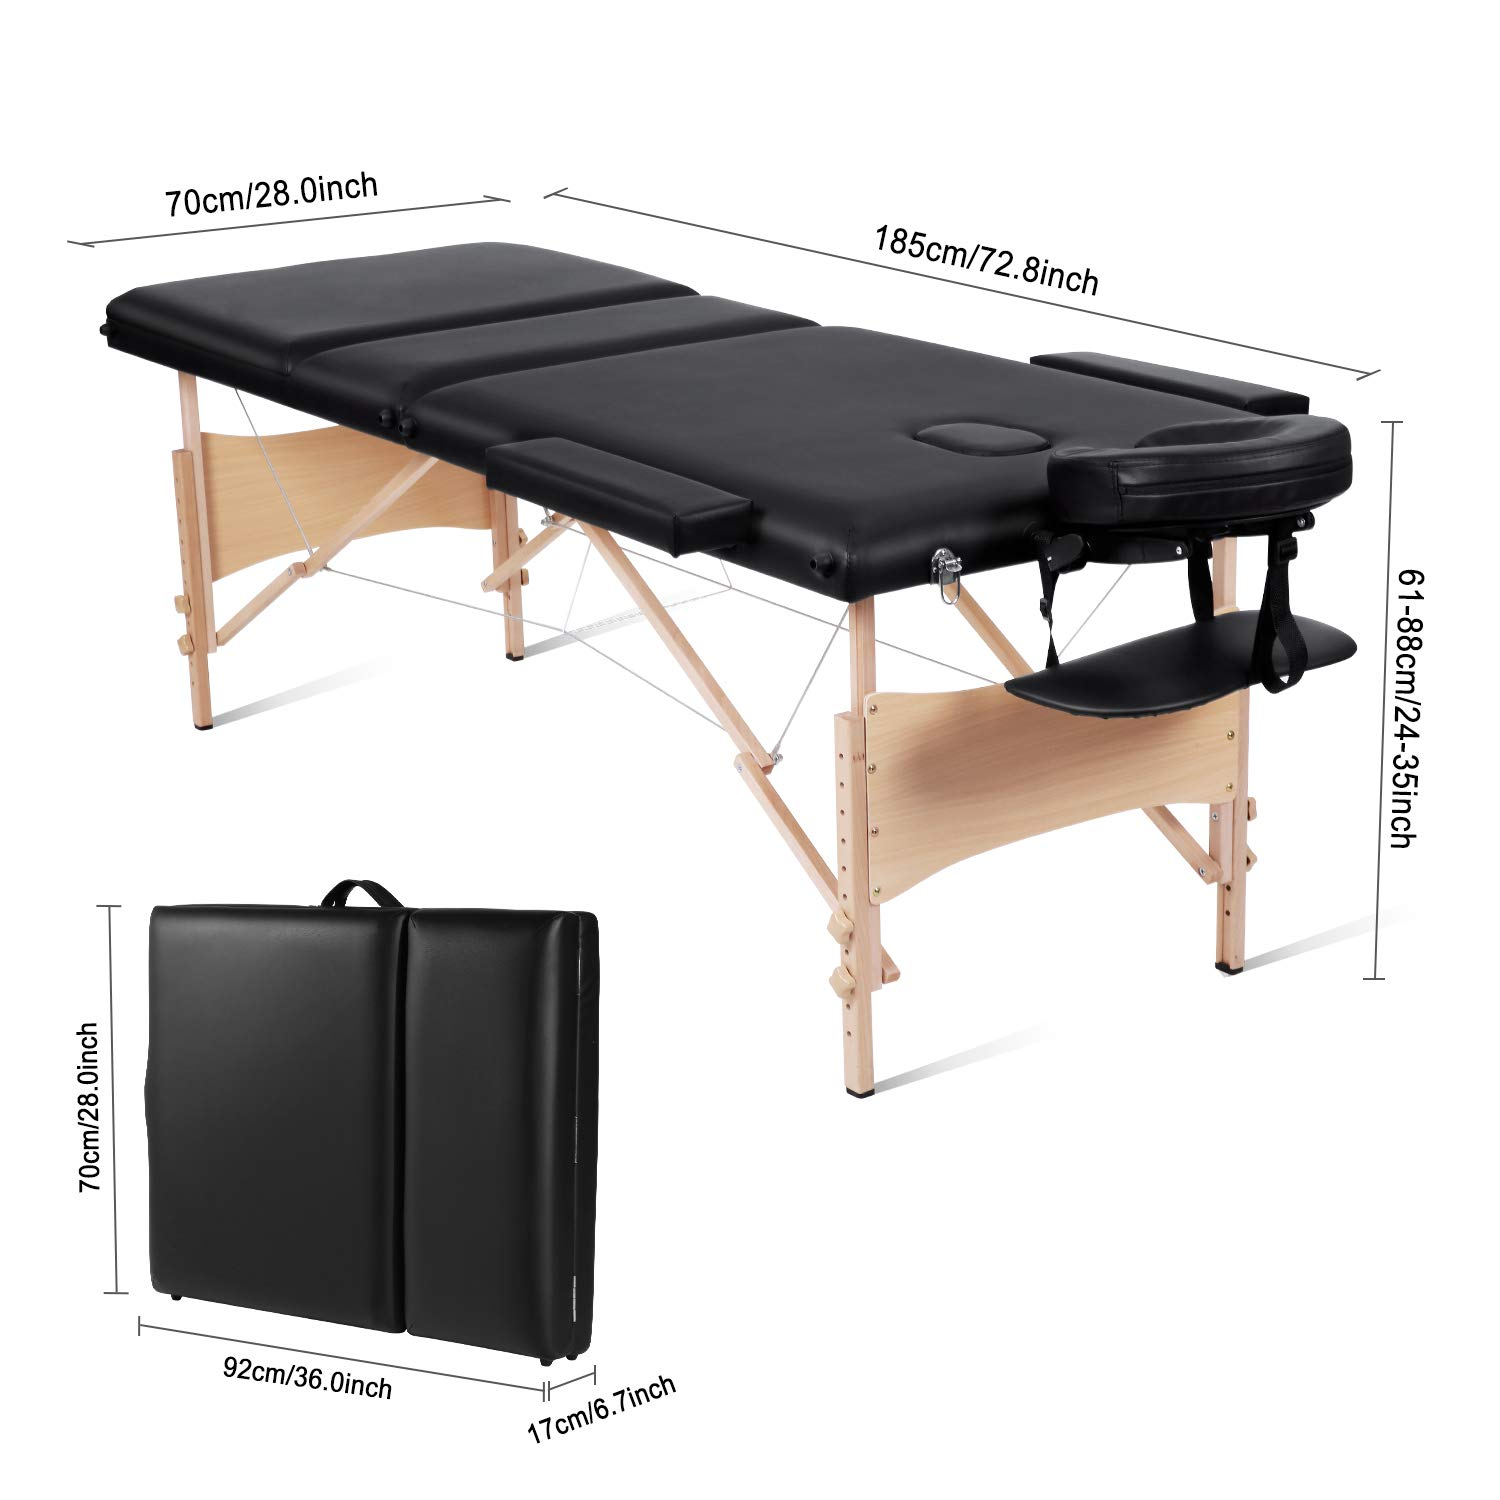 MaxKare Portable Massage Table 84'' With Carrying Bag & Accessories, 3 Fold, Extra Wide, Black. by MaxKare